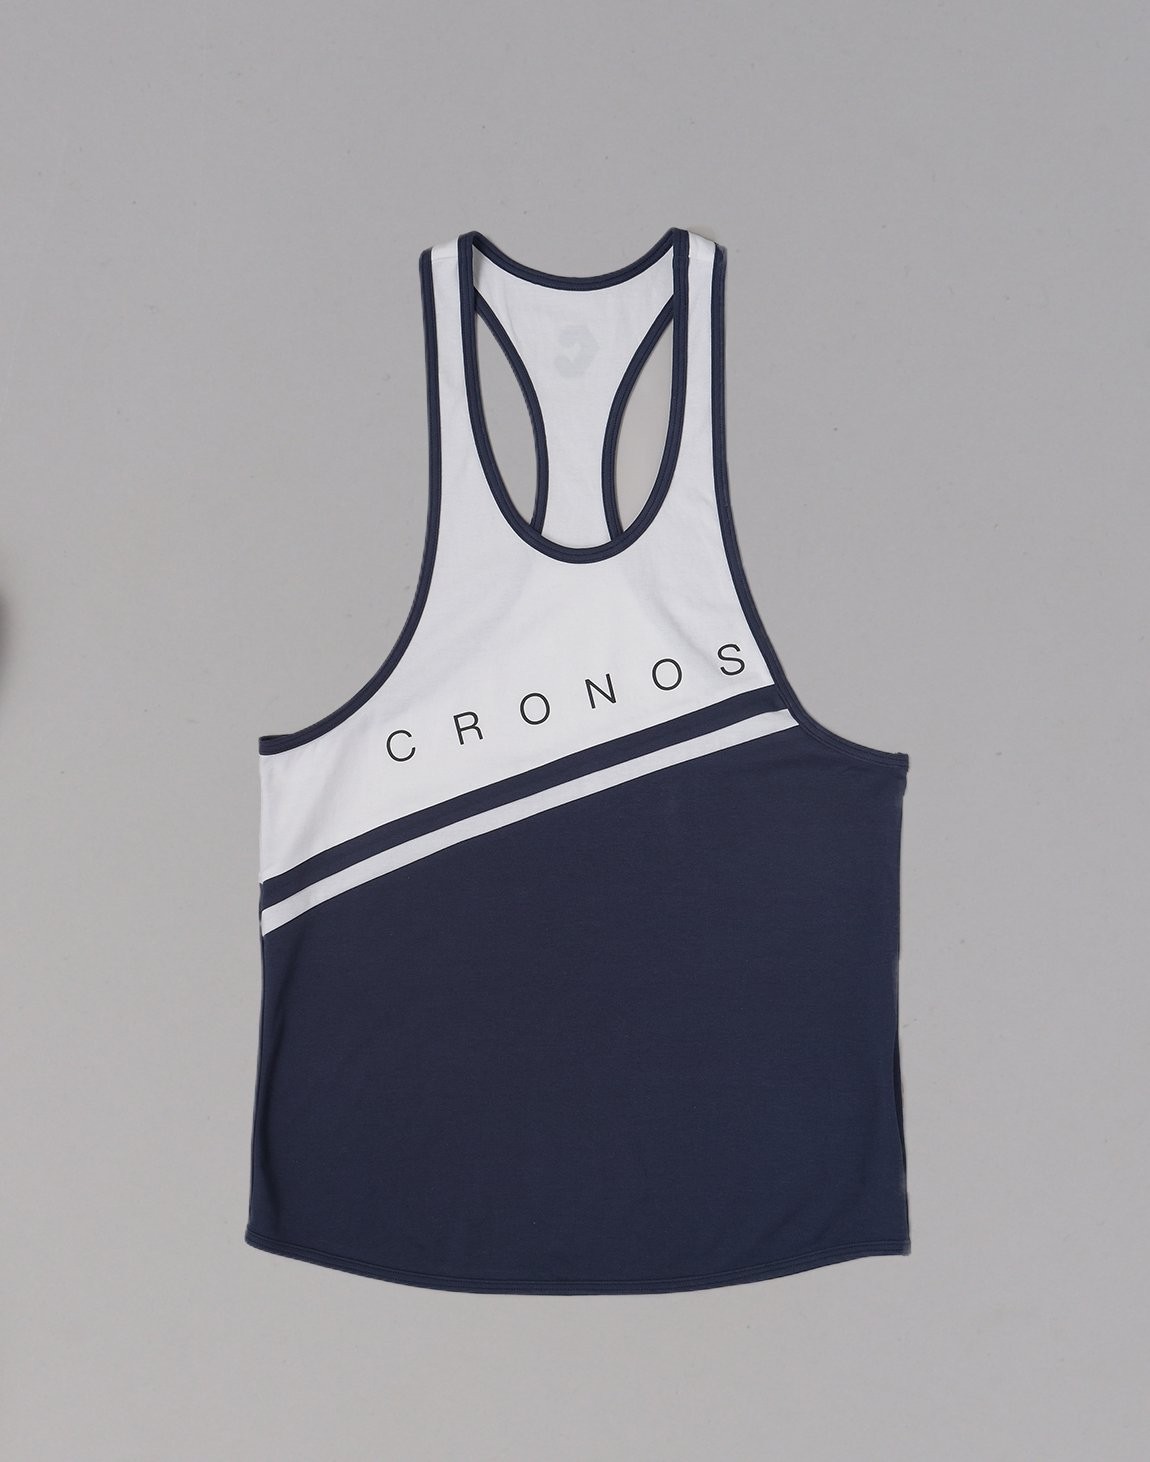 <img class='new_mark_img1' src='https://img.shop-pro.jp/img/new/icons1.gif' style='border:none;display:inline;margin:0px;padding:0px;width:auto;' />CRONOS Bi-COLOR LINE TANKTOP【NAVY】